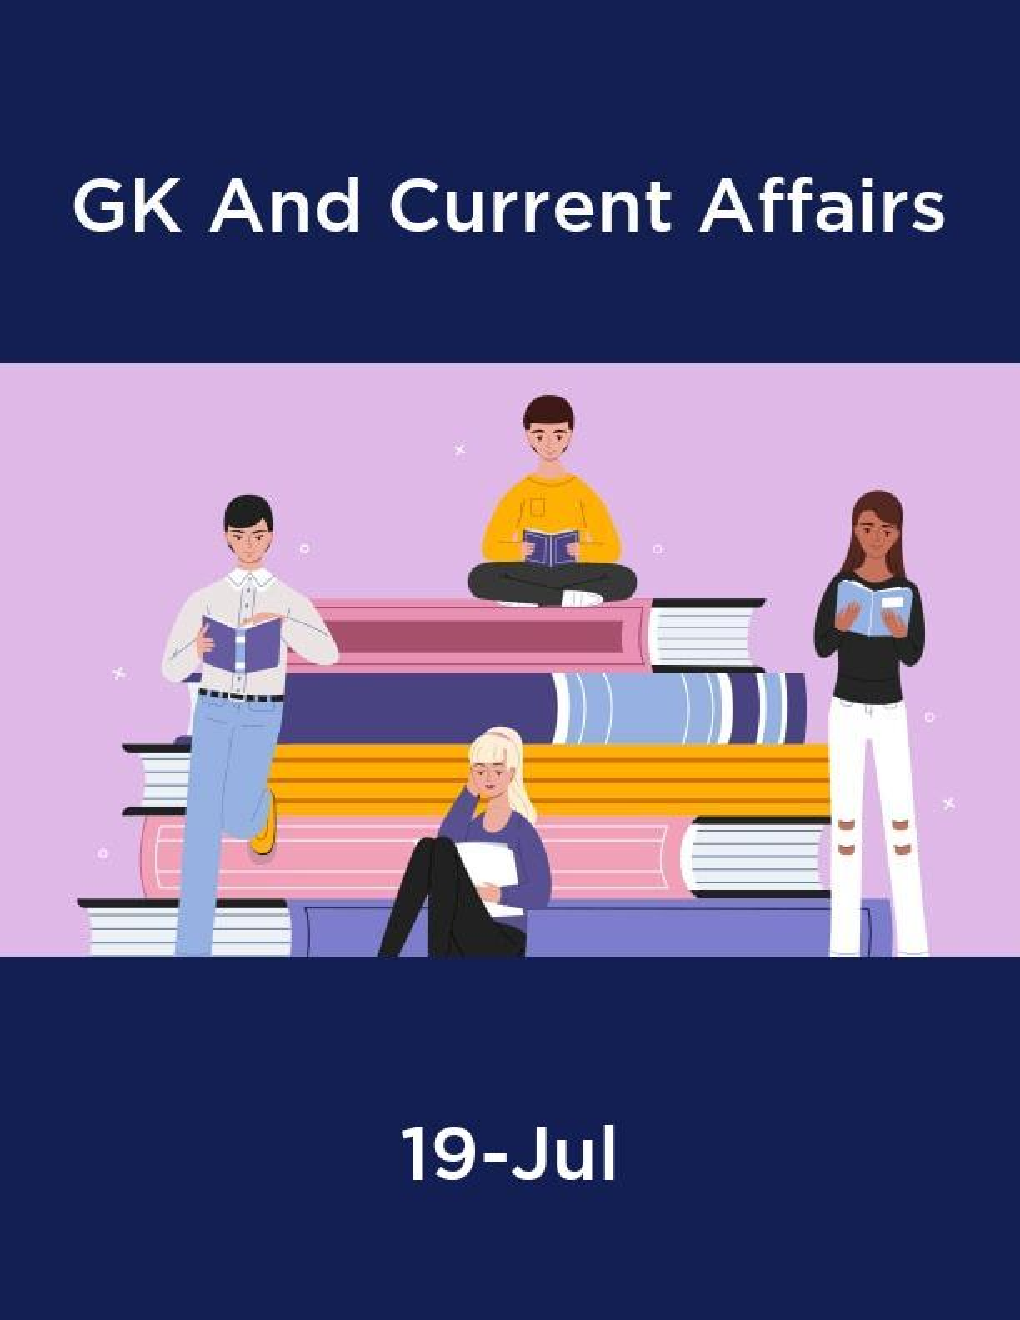 GK And Current Affairs July 2019 - Page 1